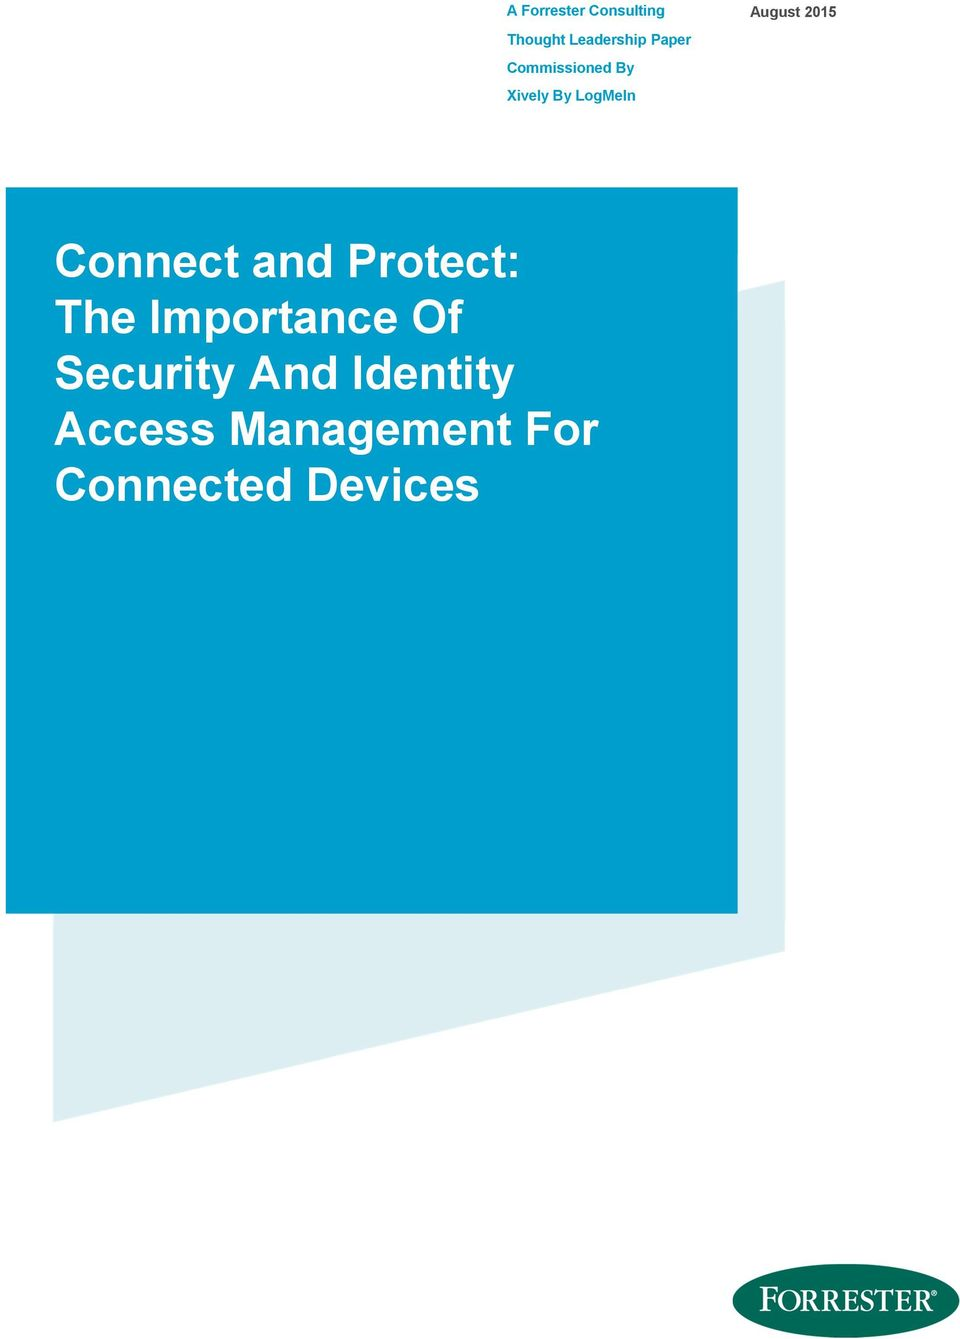 Connect and Protect: The Importance Of Security